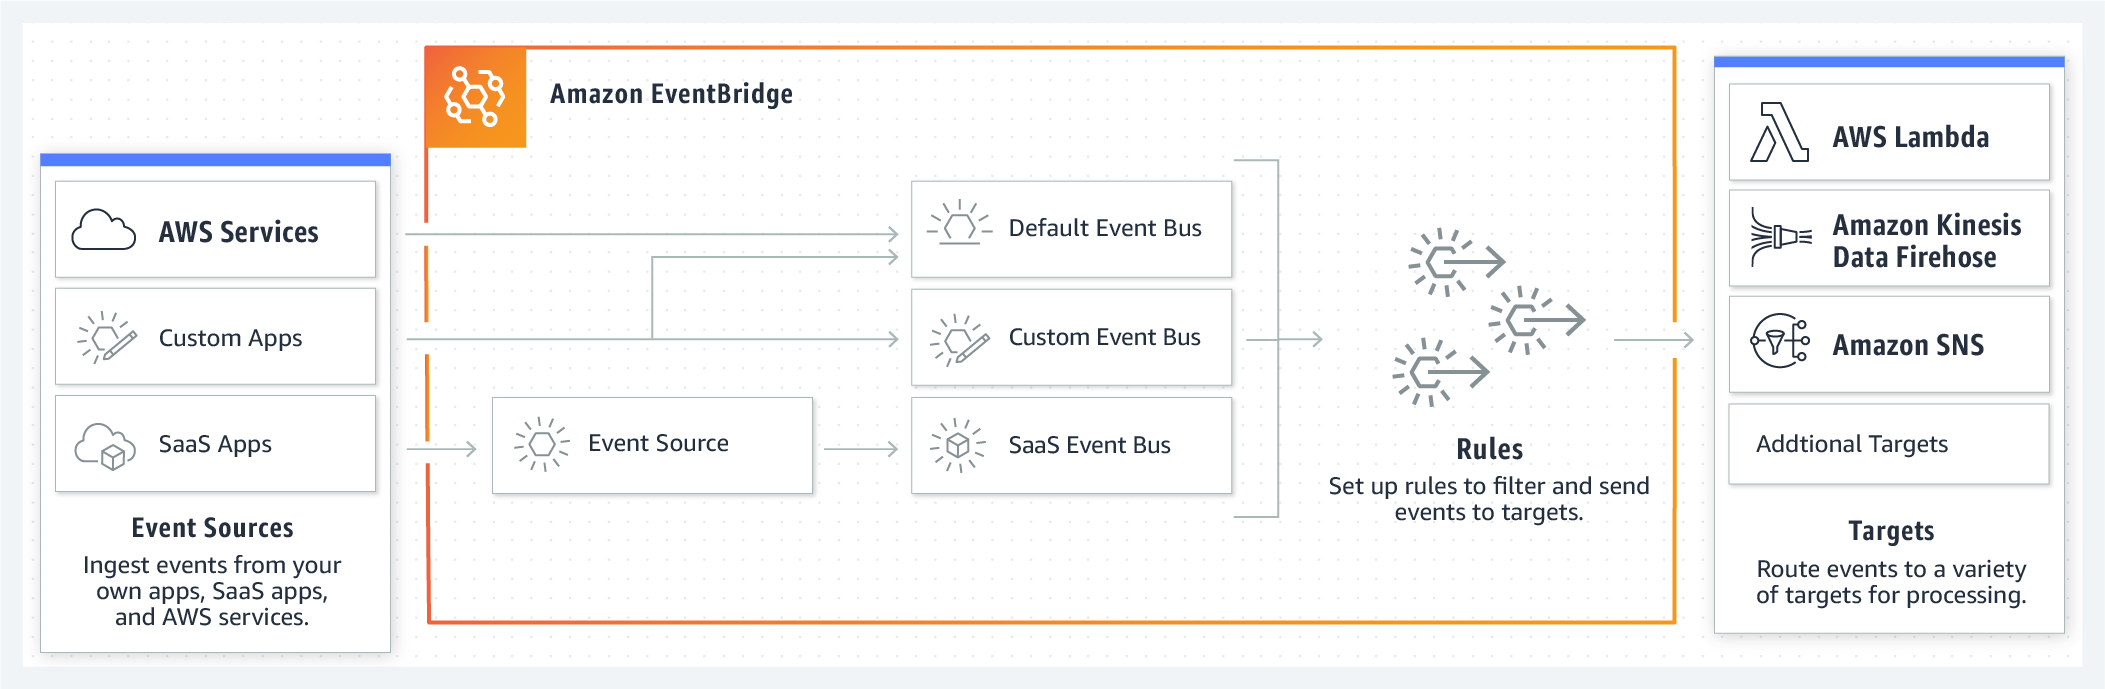 product-page-diagram-EventBridge_How-it-works_V2@2x